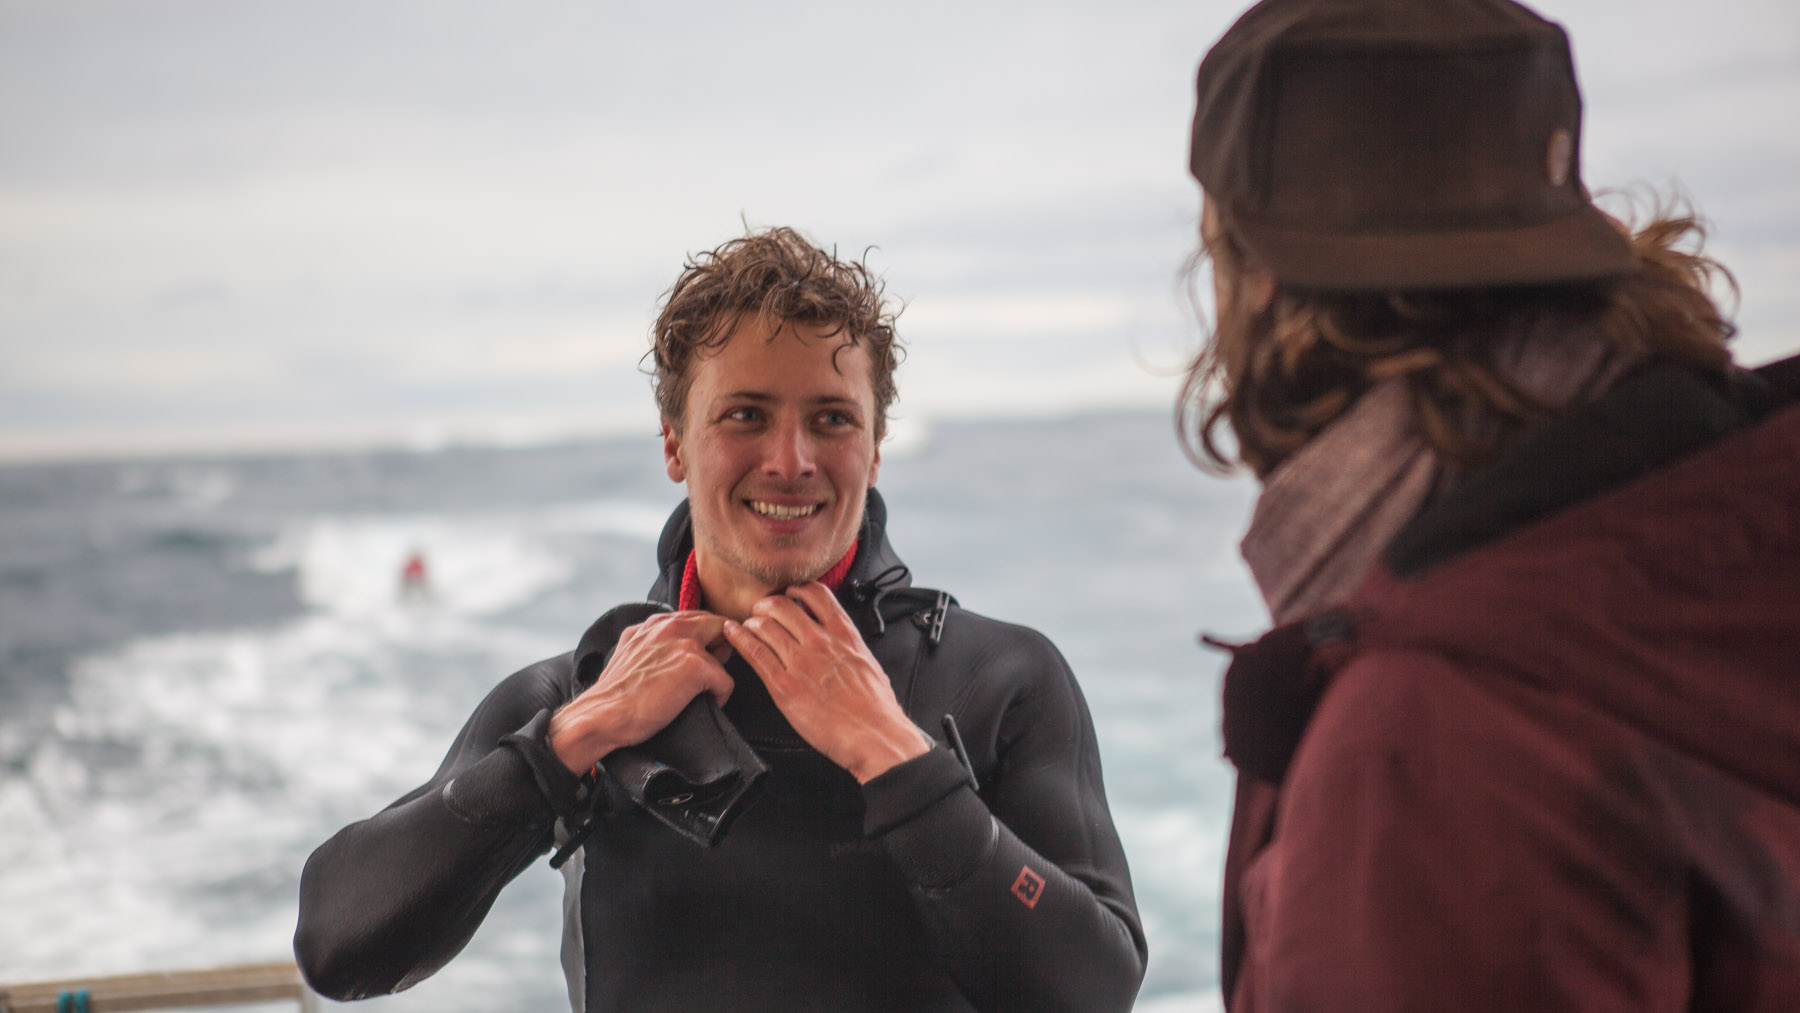 alastair mcleod successfully windsurfed pedra branca tasmania for red bull